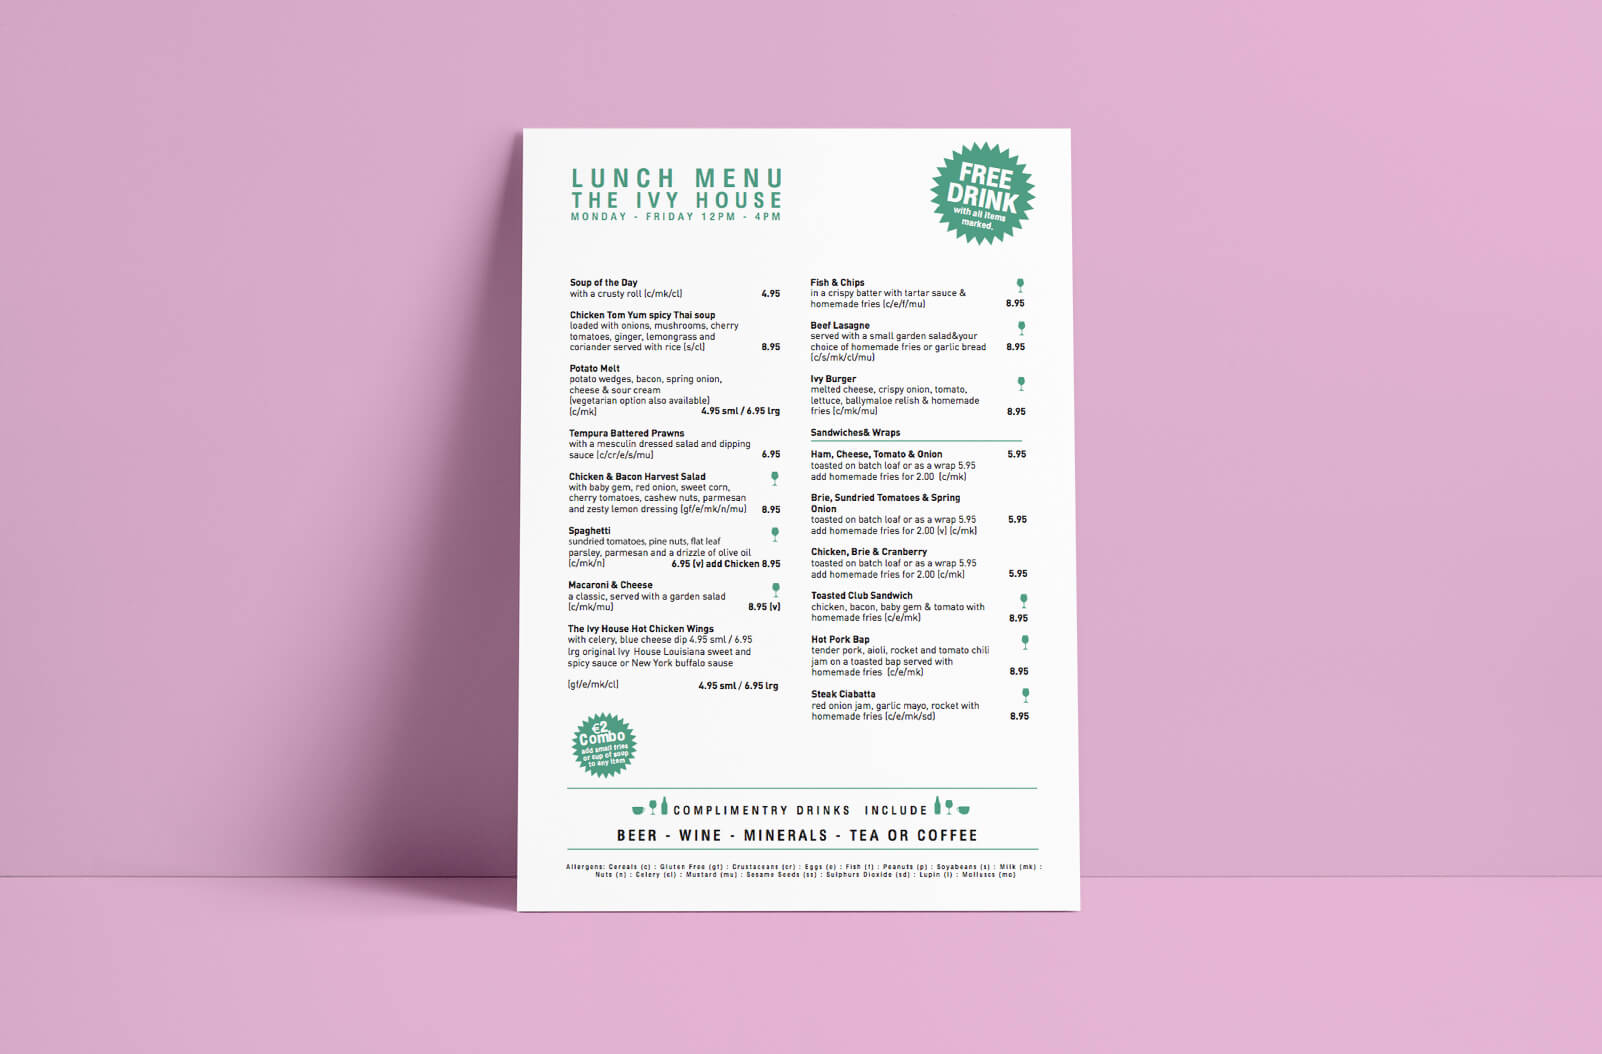 Lunch menu Takeaway printing